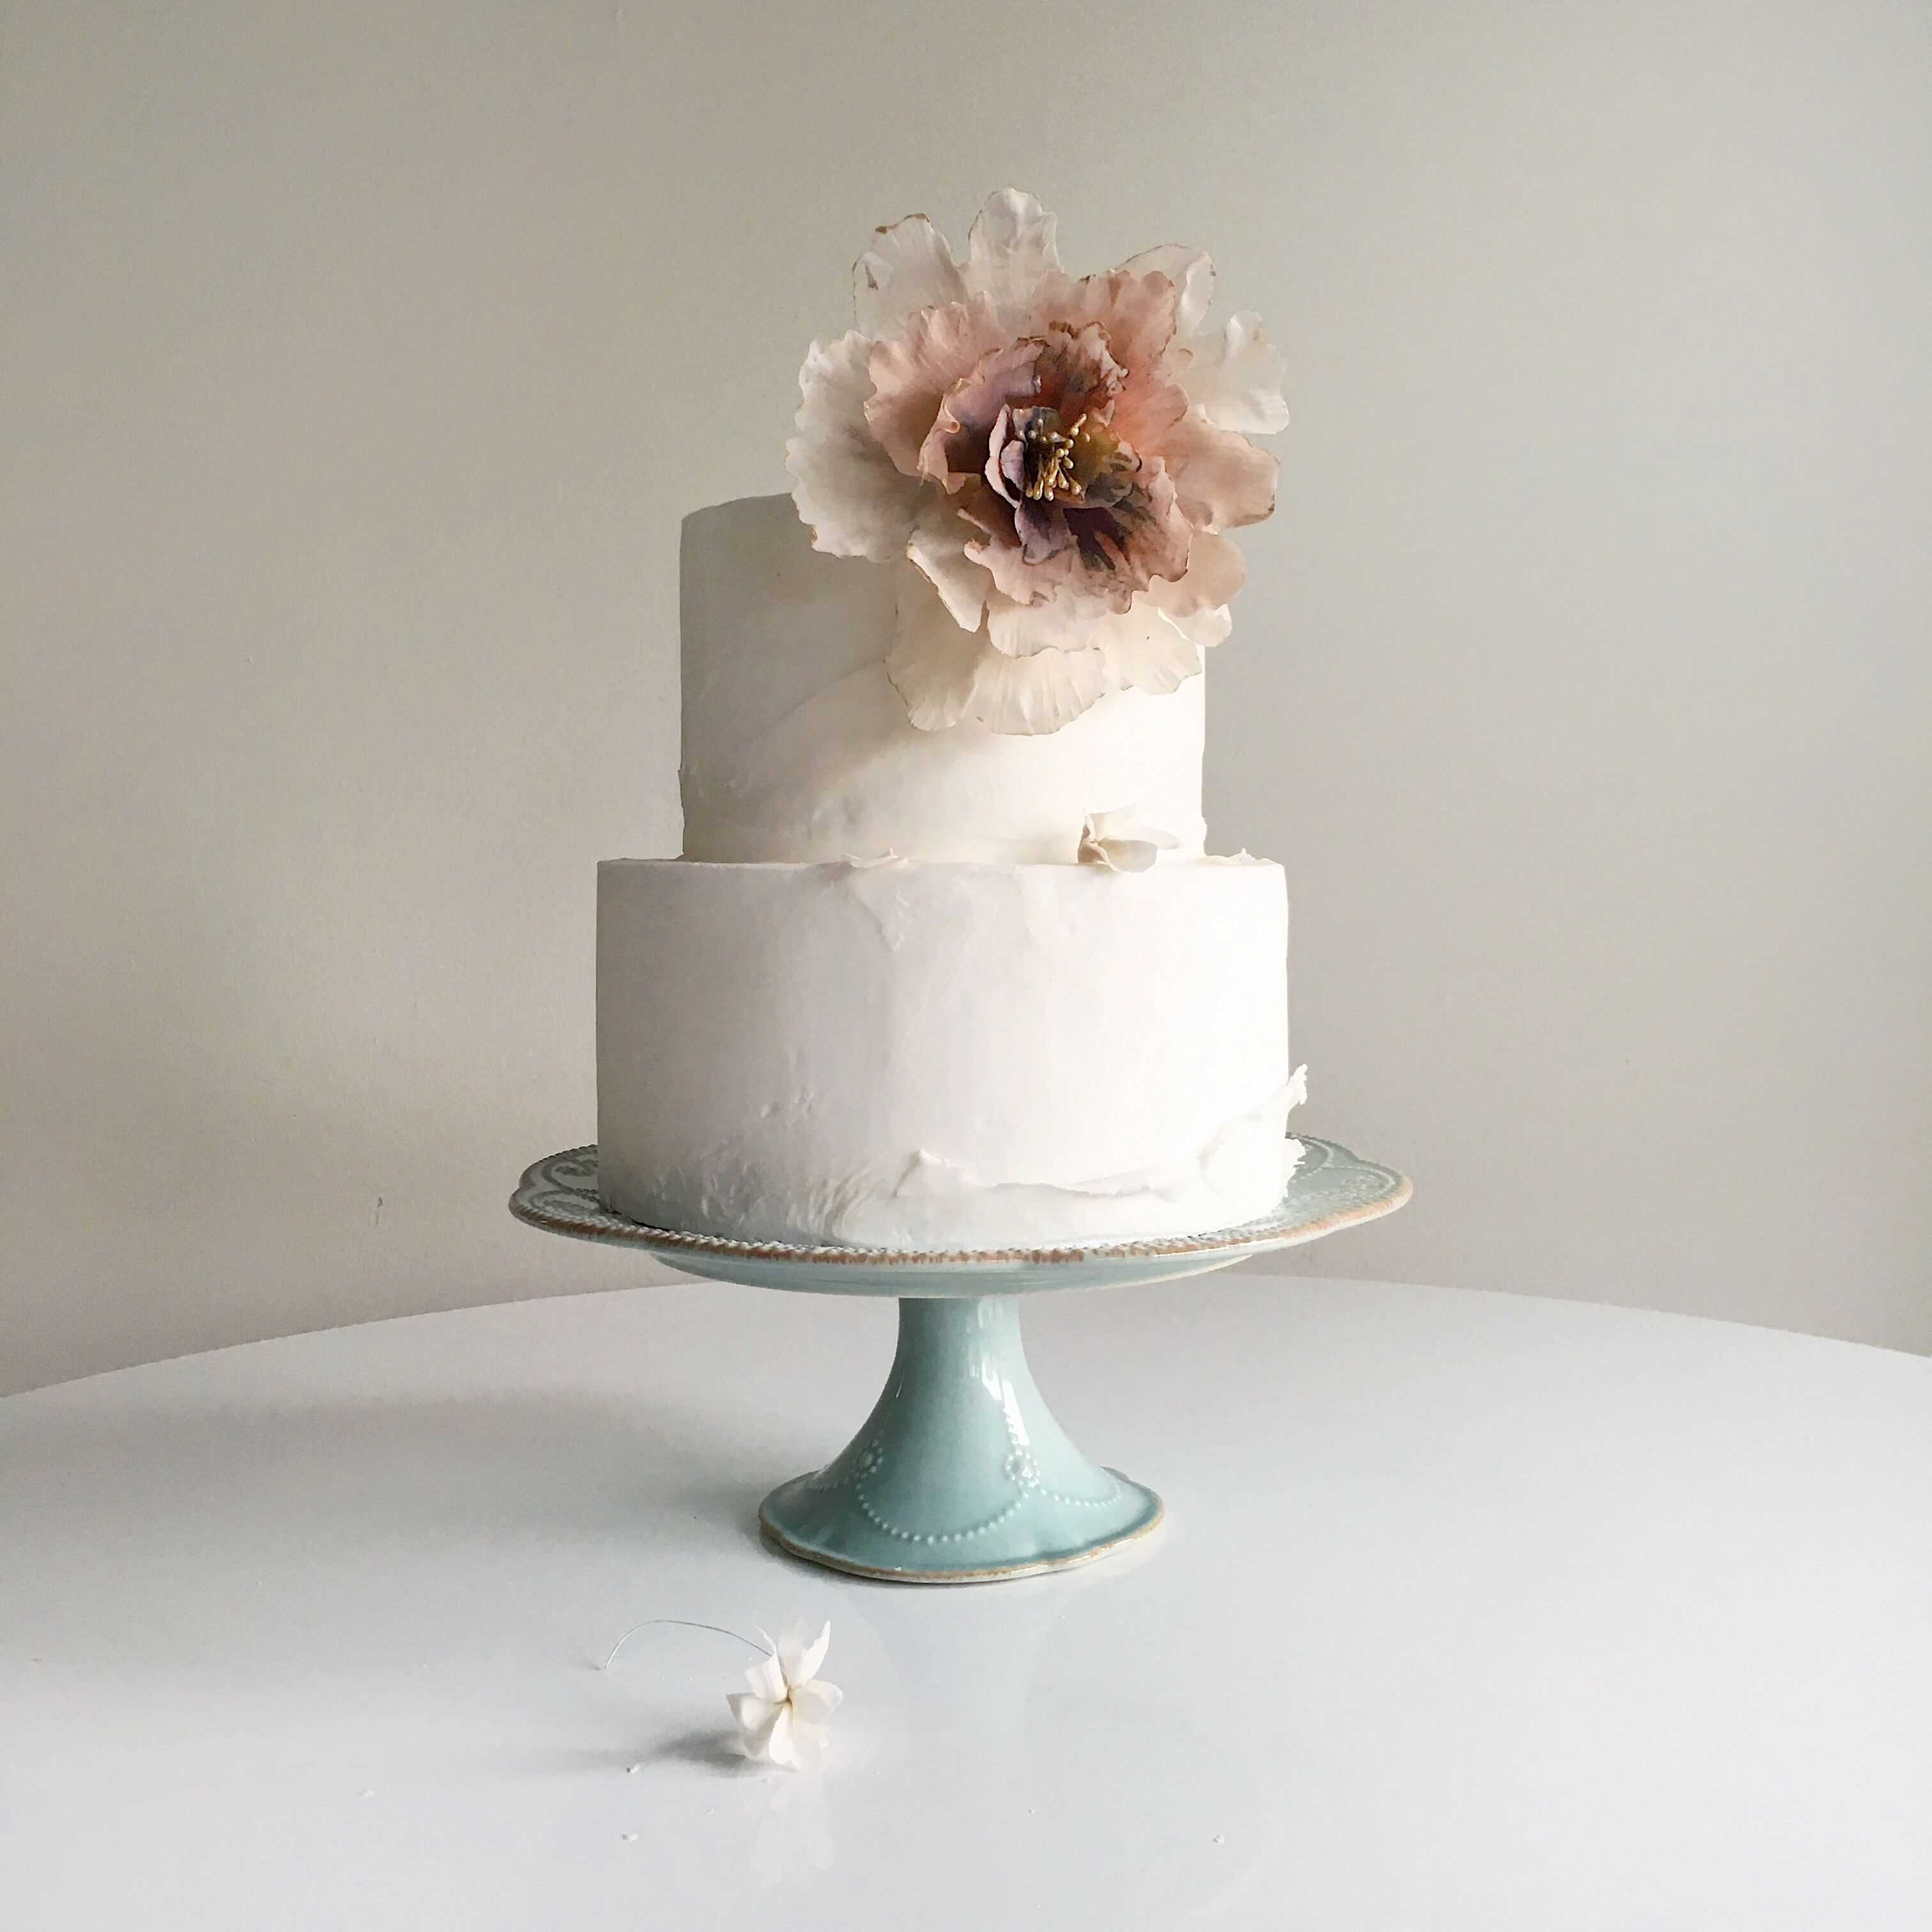 Ivory torn fondant wedding cake with sugar flower